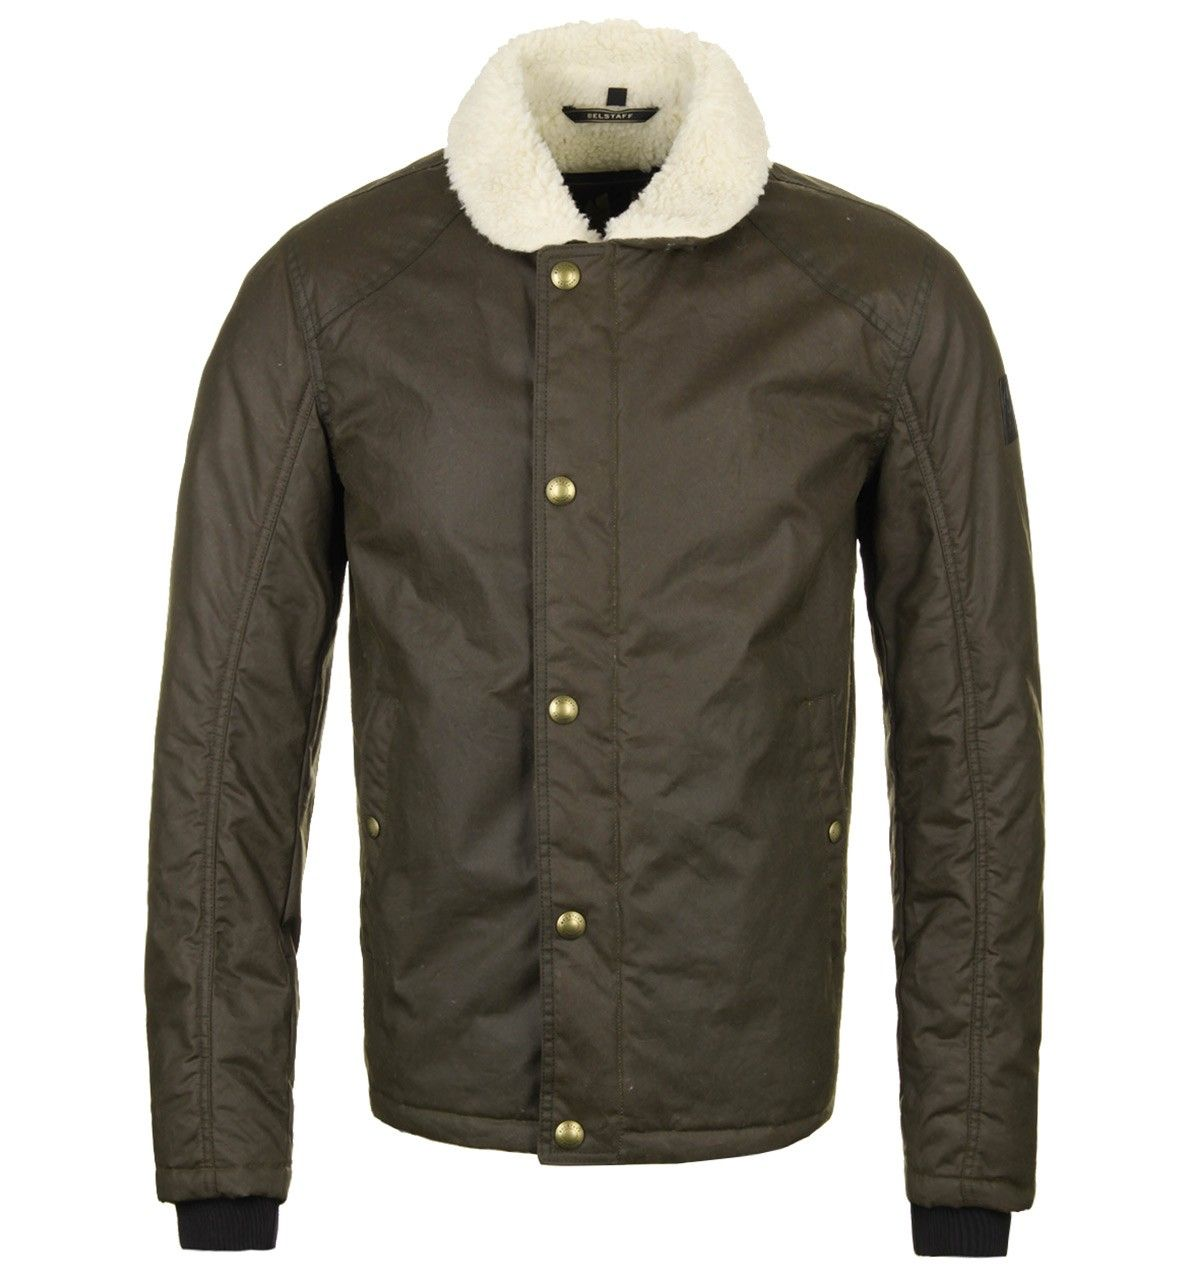 76b5cf187 Belstaff Pentenhall Faded Olive Waxed Cotton Shearling Jacket ...